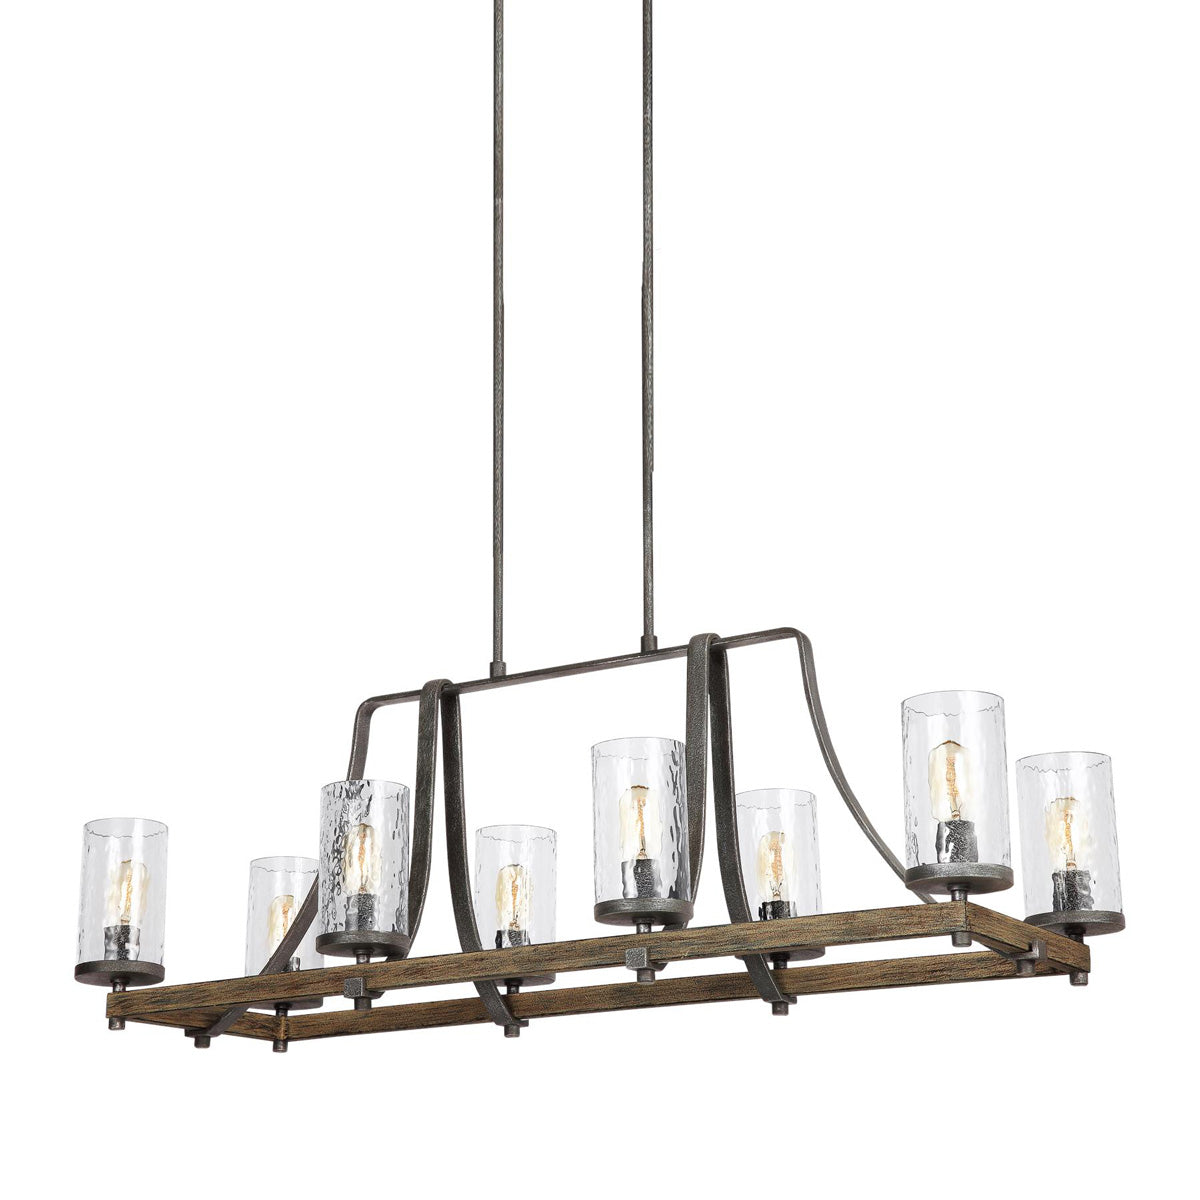 Adair 8 Light Linear Chandelier